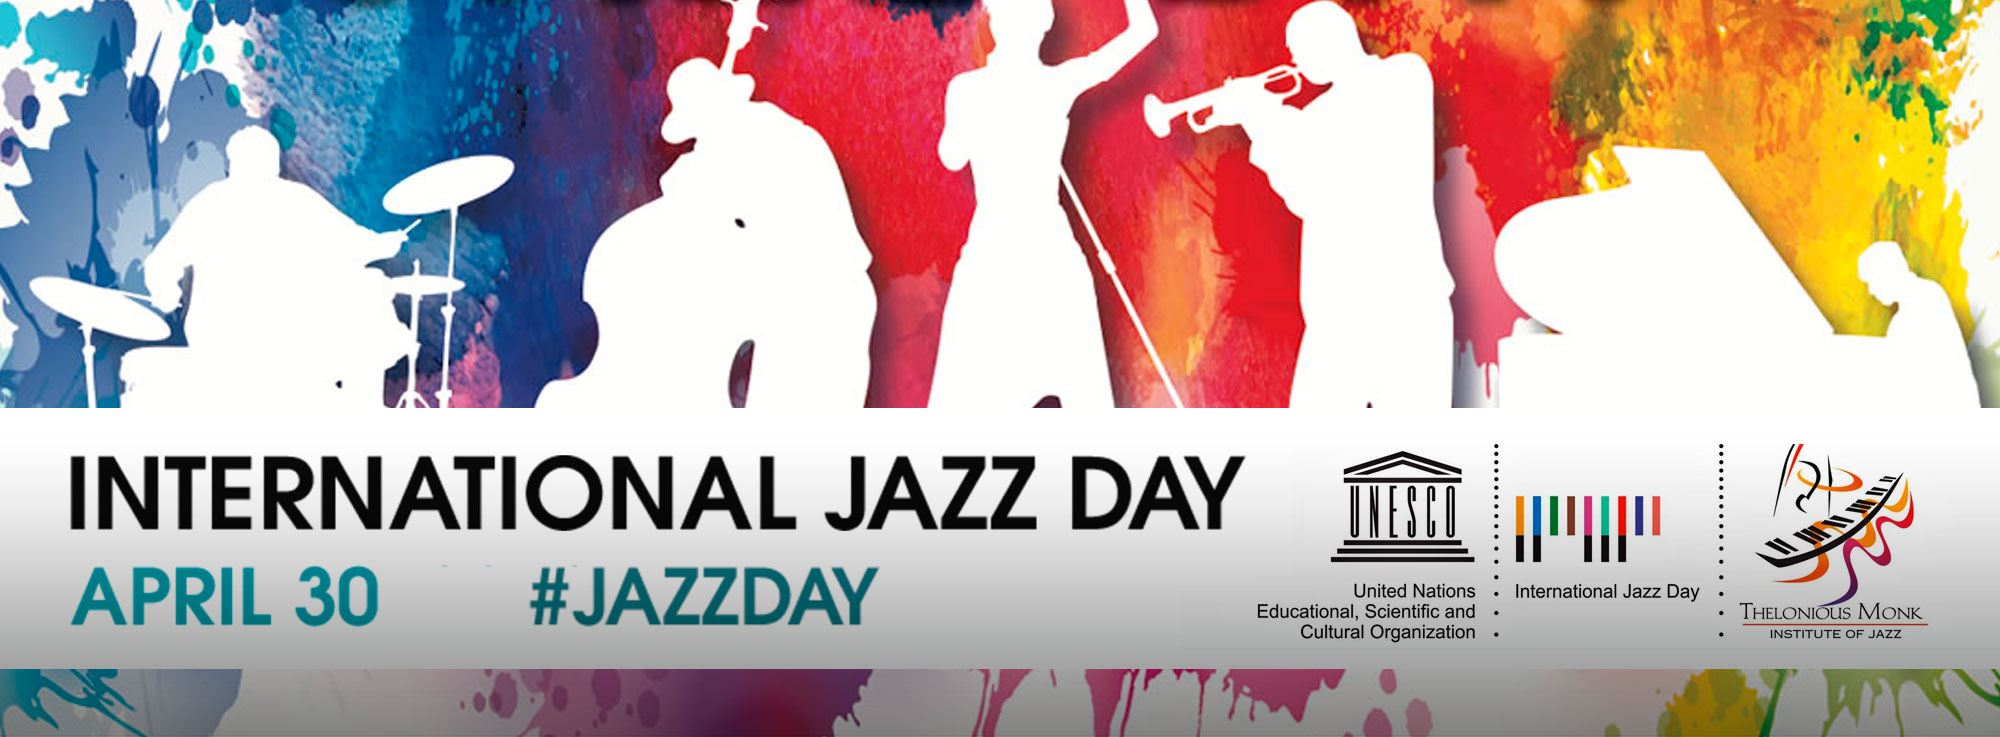 Barletta: International Jazz Day al Saint Patrick